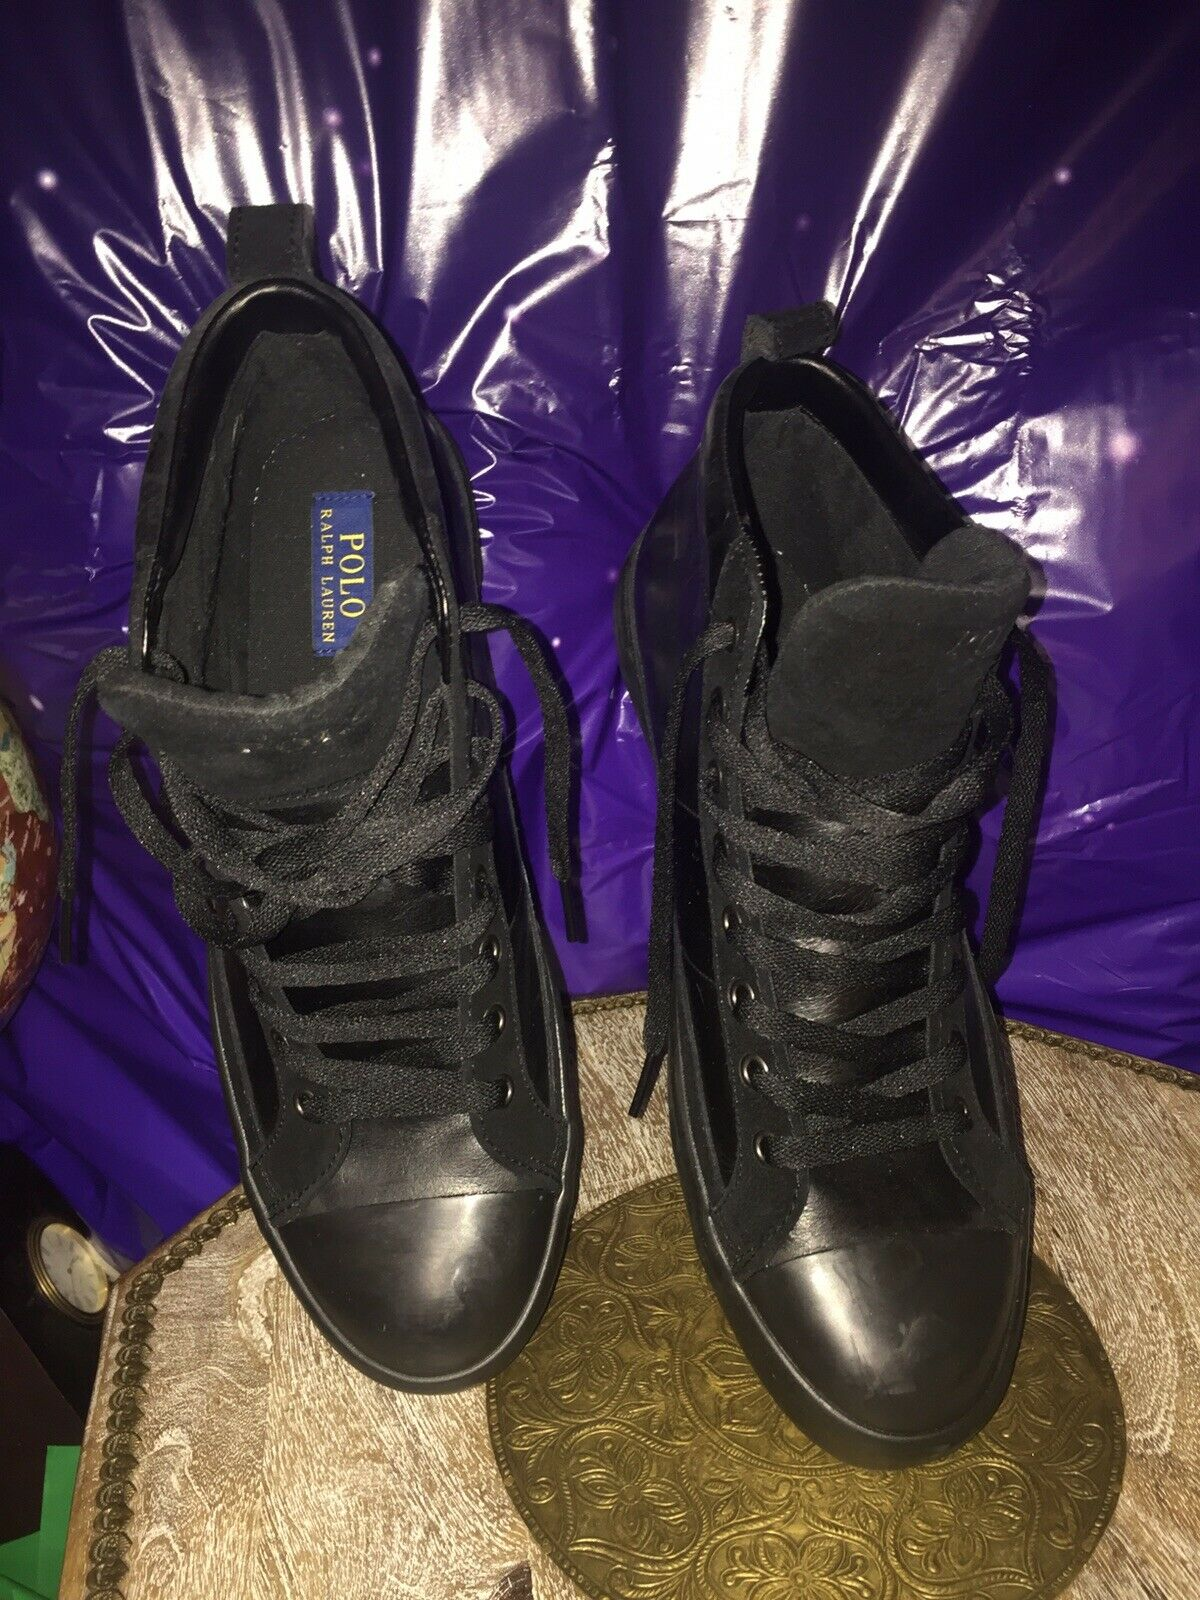 New Polo Ralph Lauren Shoe Leather Size 11 (13267)